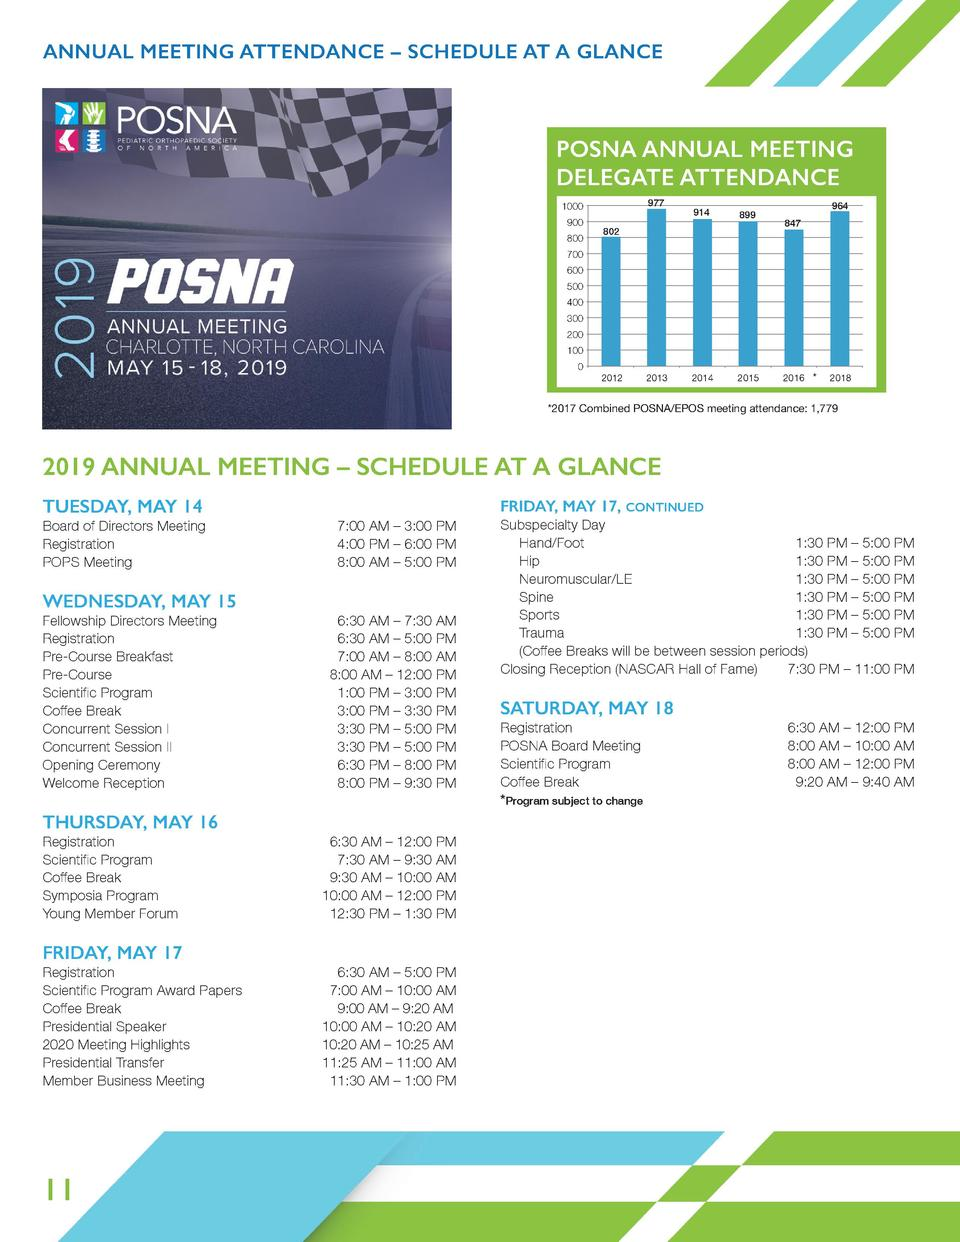 ANNUAL MEETING ATTENDANCE     SCHEDULE AT A GLANCE  POSNA ANNUAL MEETING DELEGATE ATTENDANCE 802  977  914  899  847  964 ...